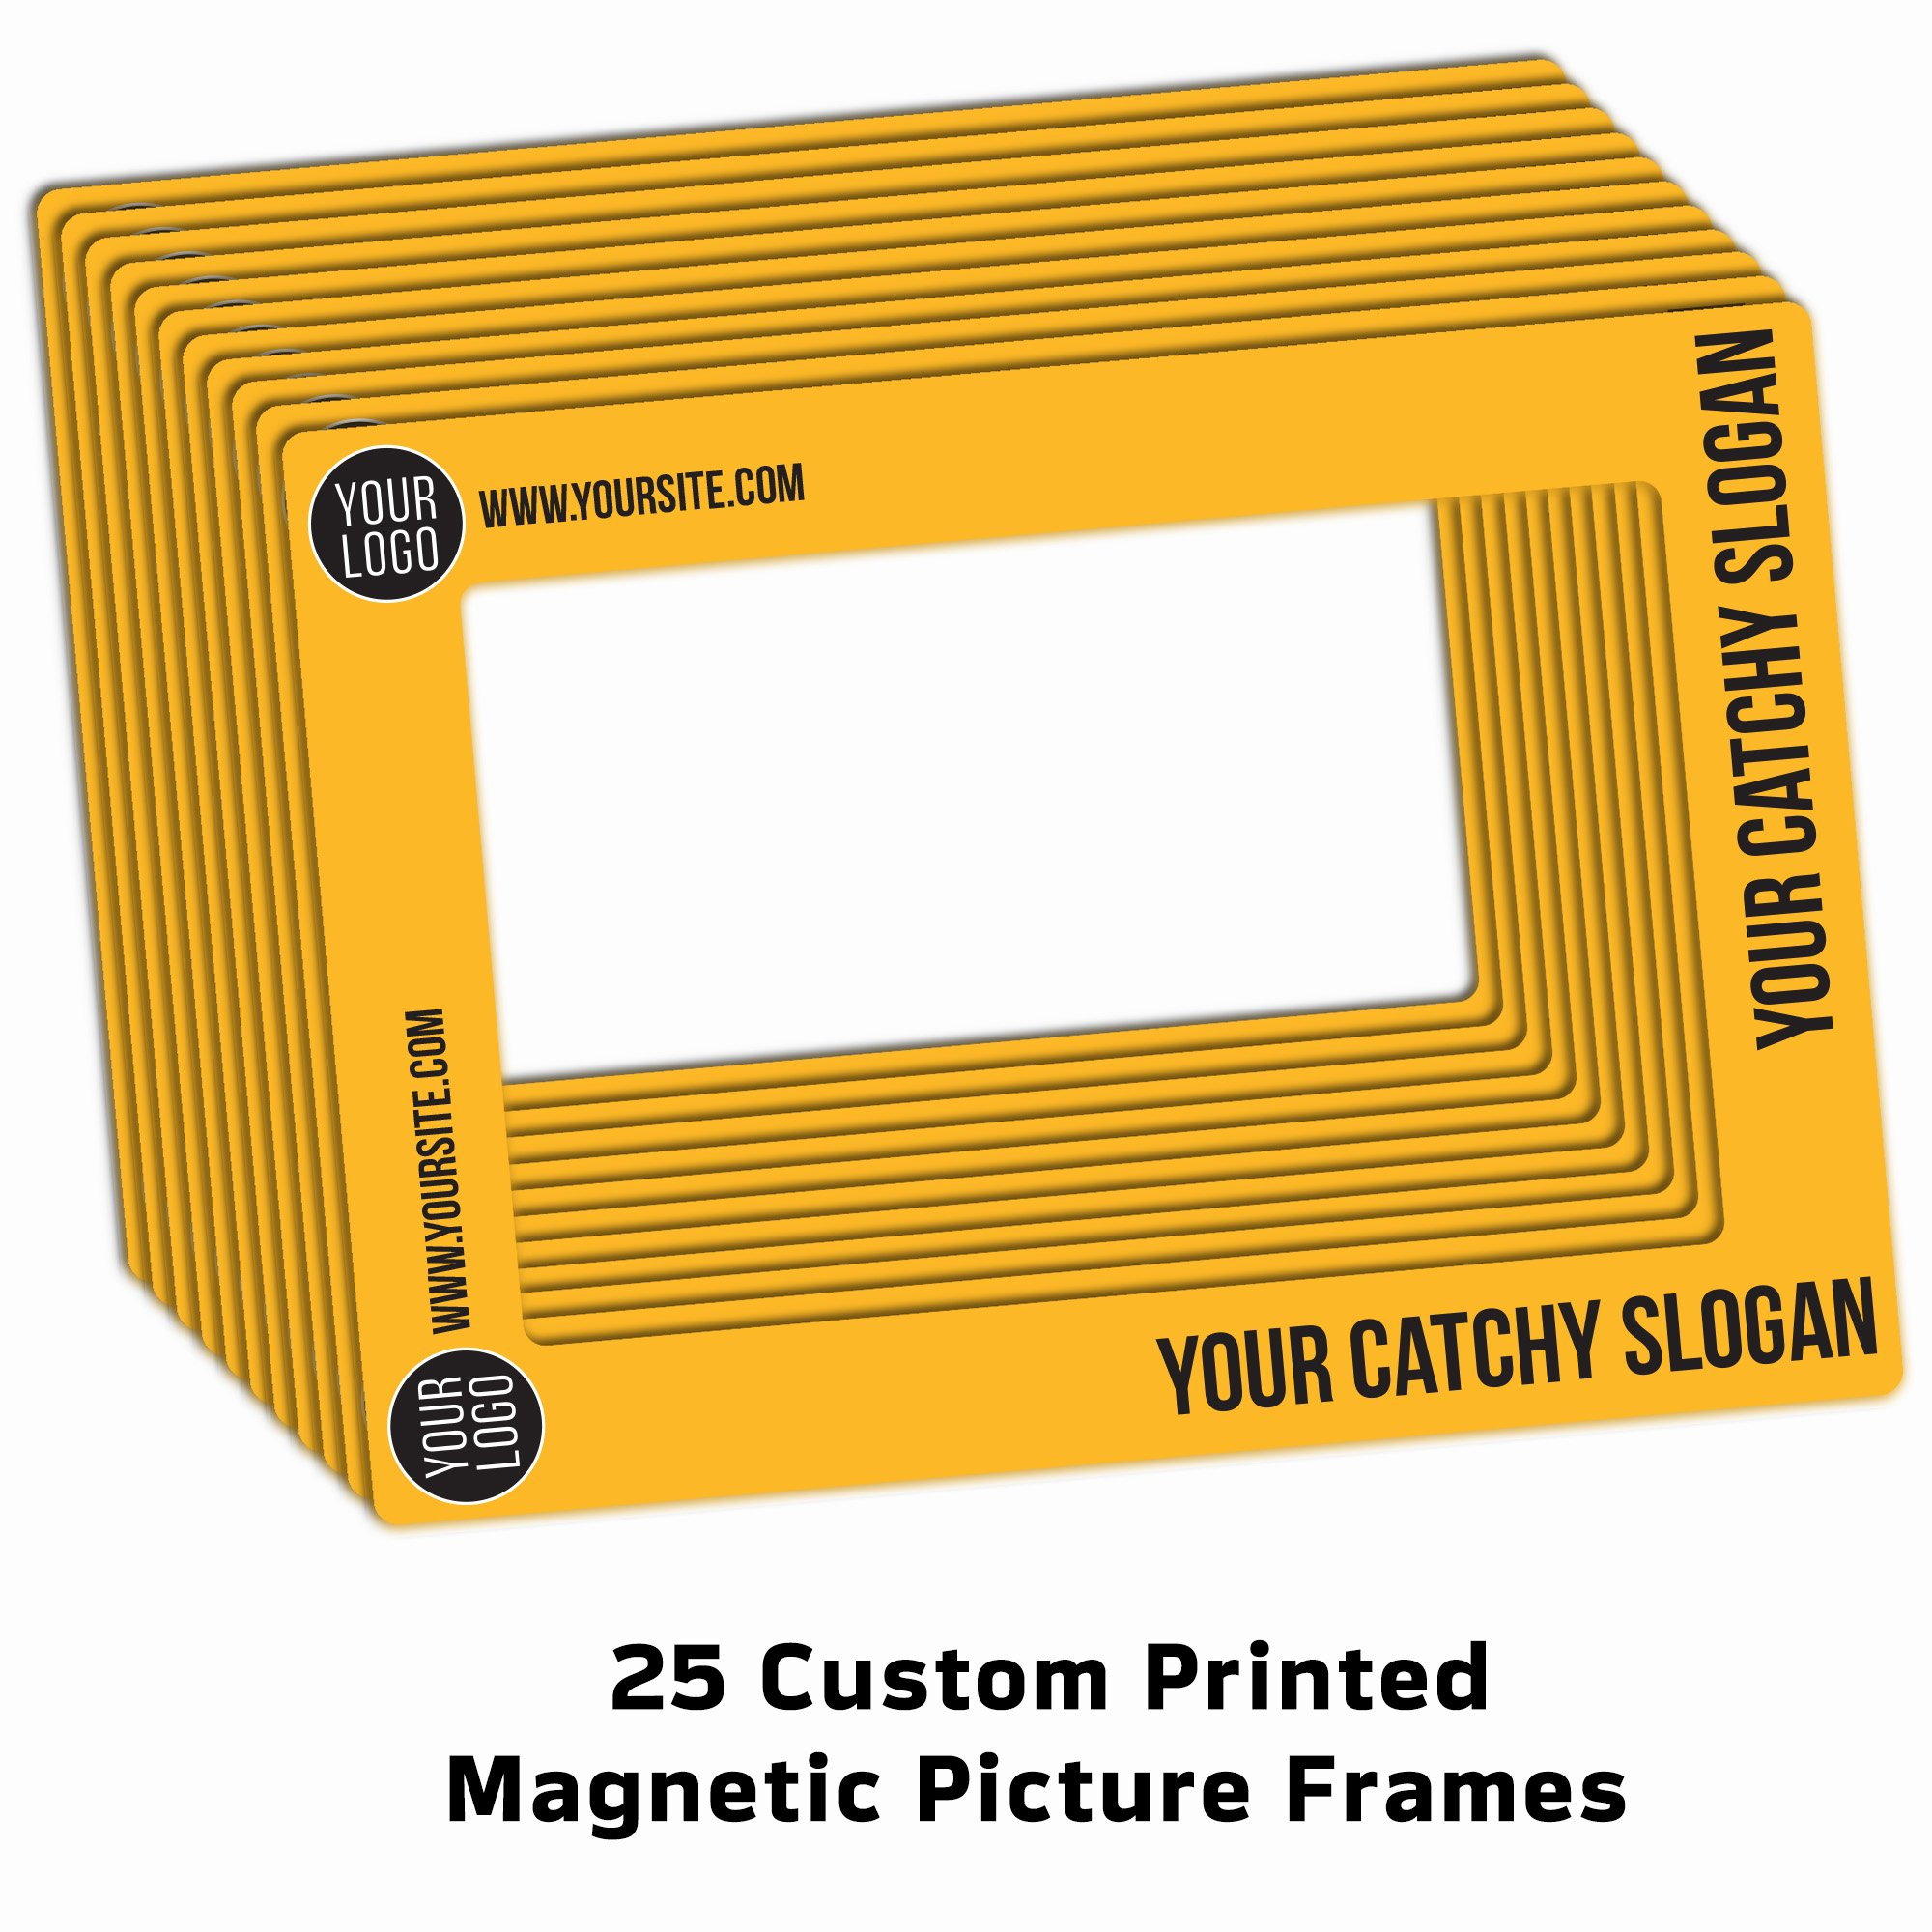 Worthy Promo 25 Magnetic Picture Frames for Business Promotional Products, Fits 4x6 and 5x7 Pictures, Plus 25 Customized Bonus Magnets Featuring Your Logo